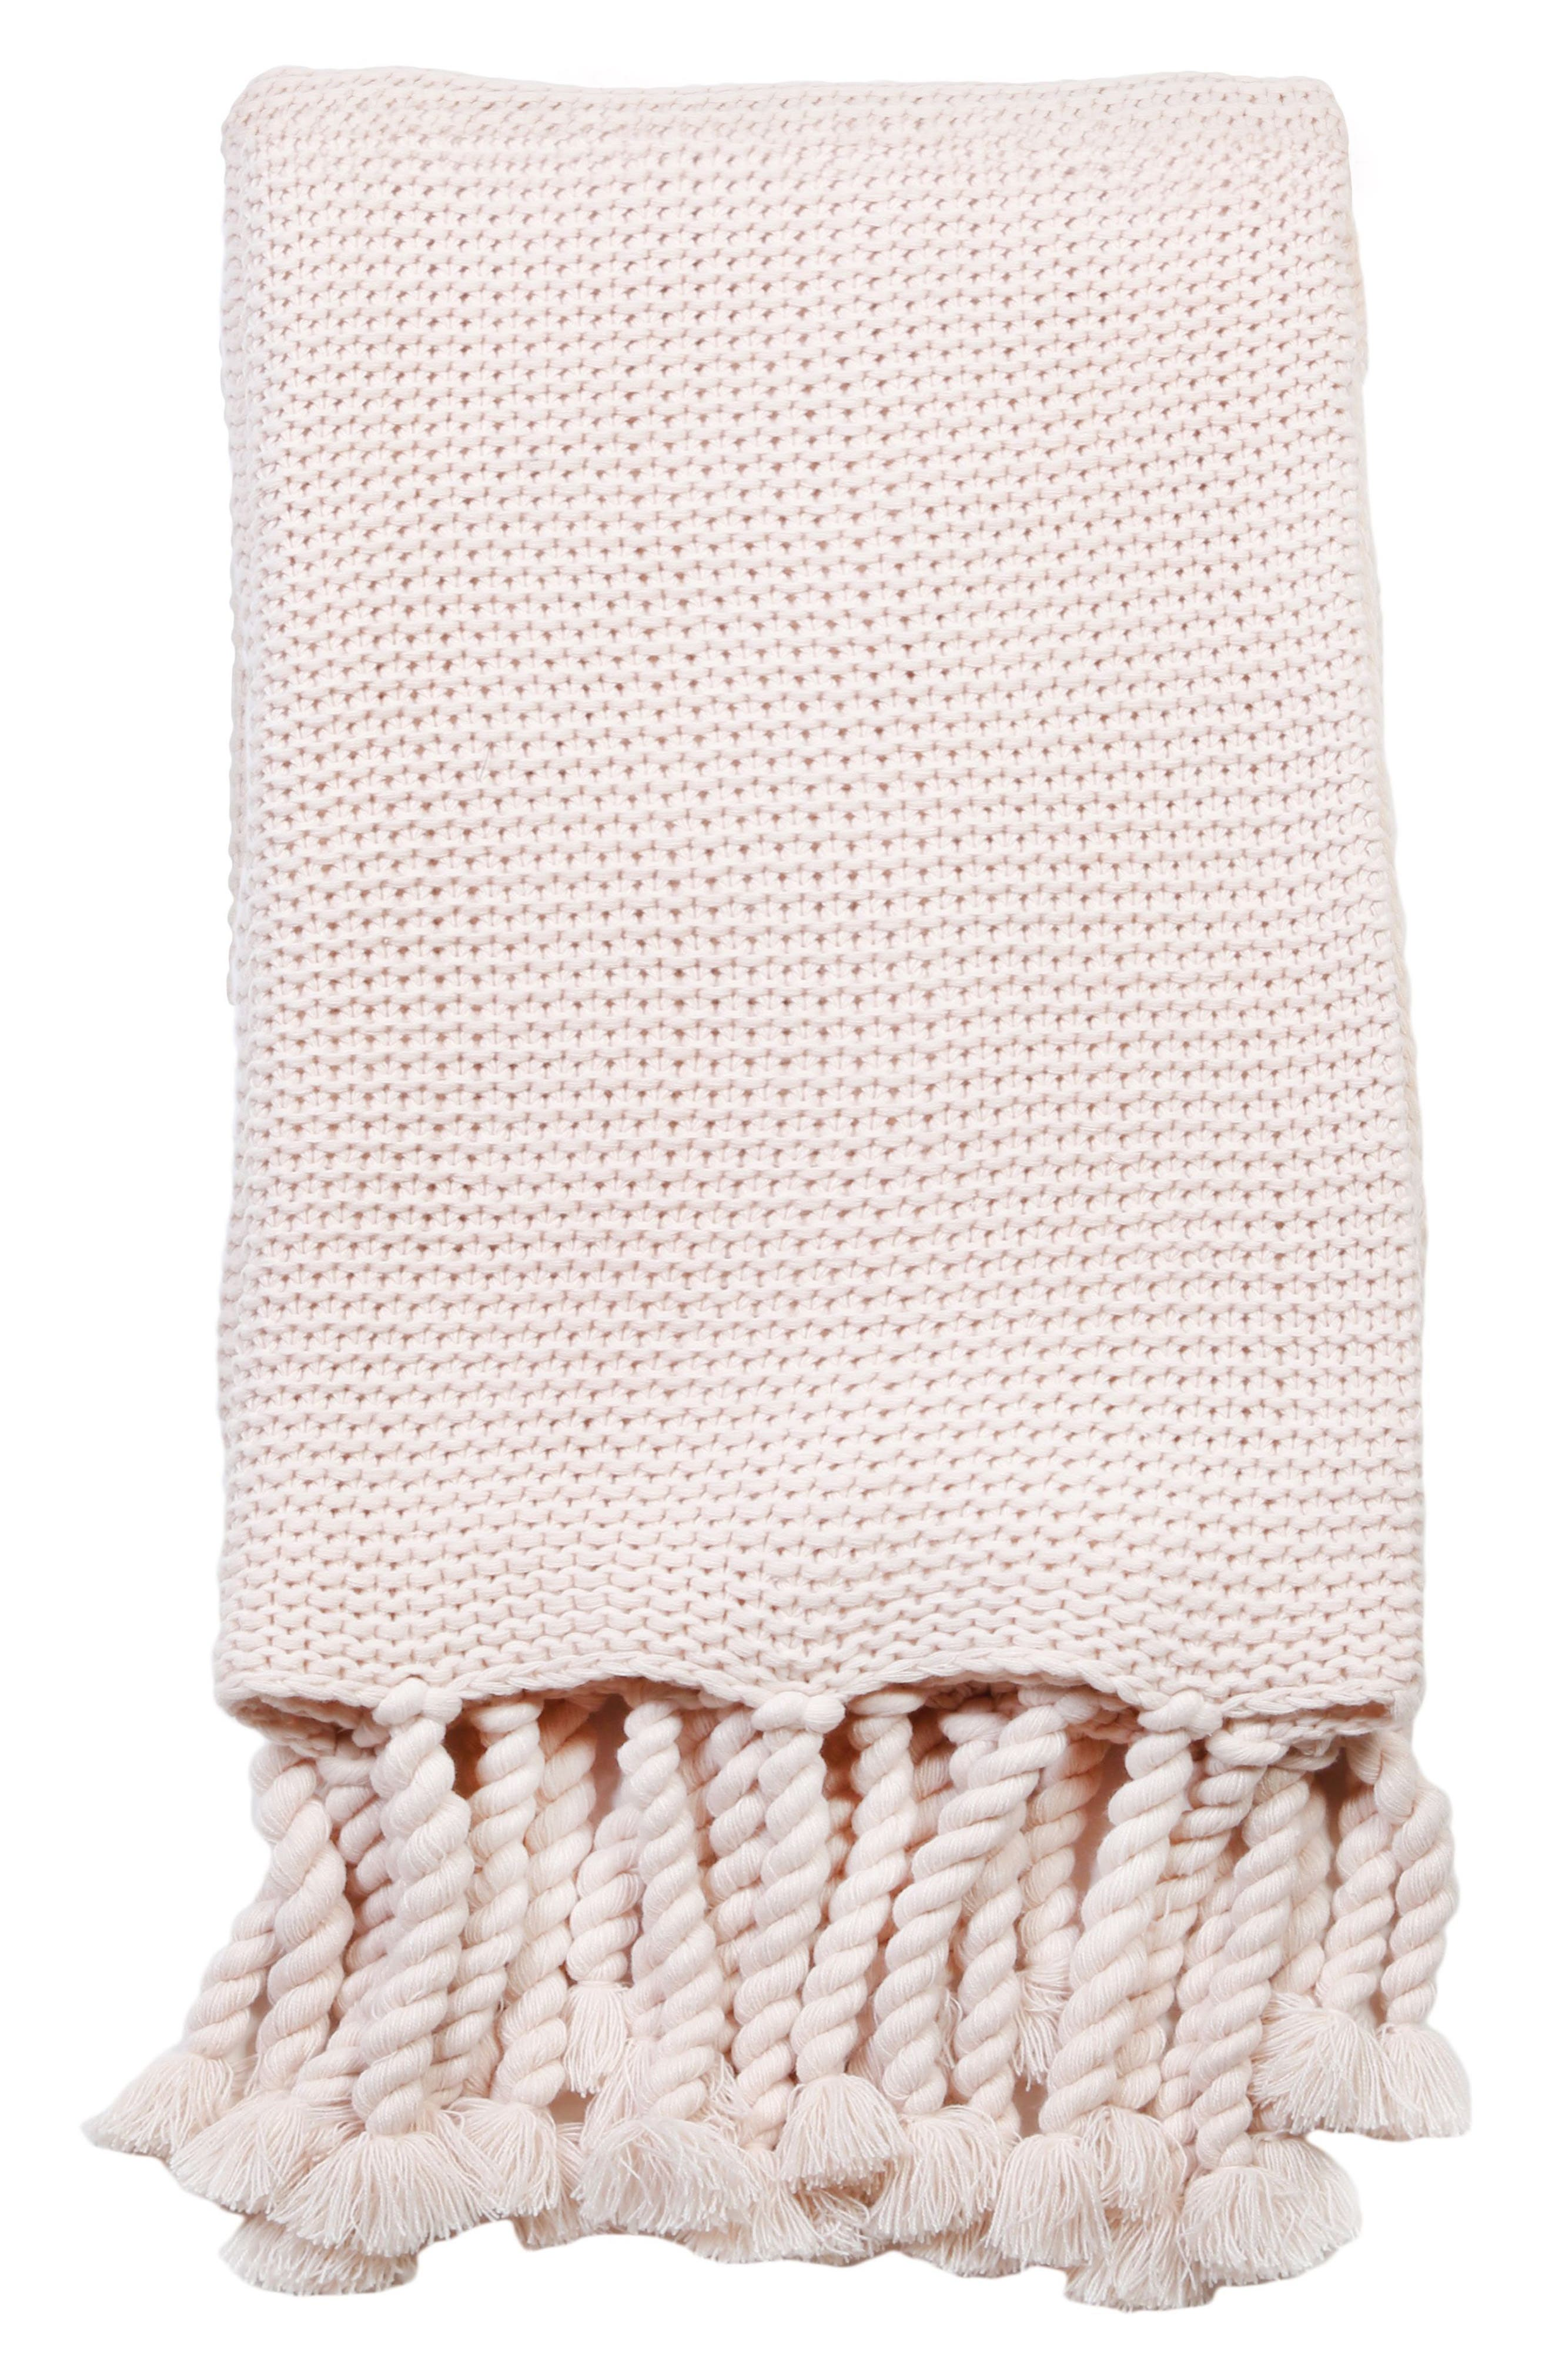 Trestles Oversize Throw Blanket,                         Main,                         color, Blush